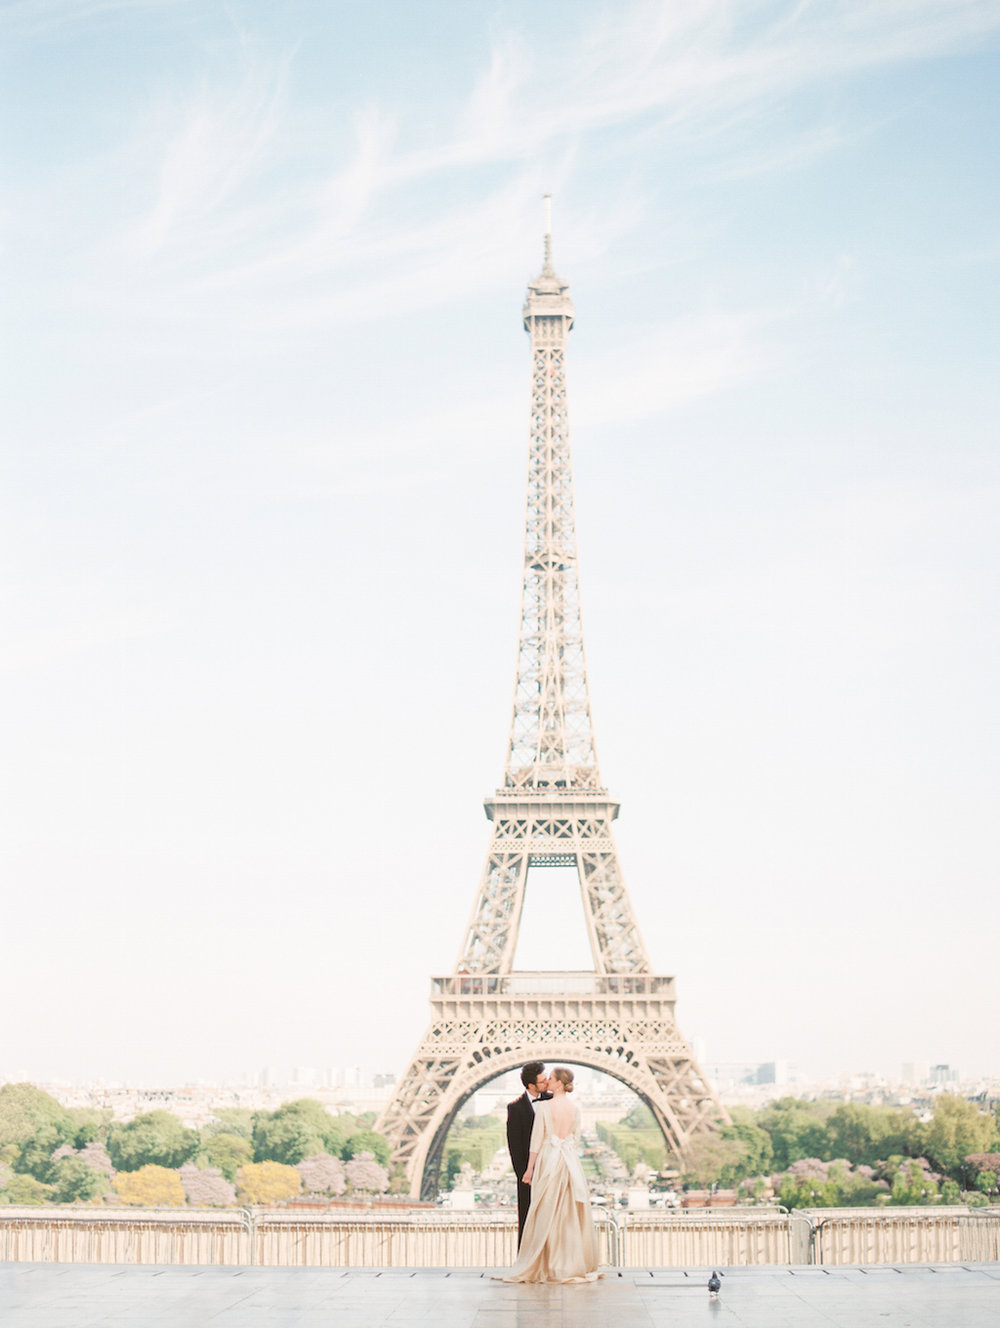 Kristin-La-Voie-Photography-Paris-Honeymoon-23.jpg